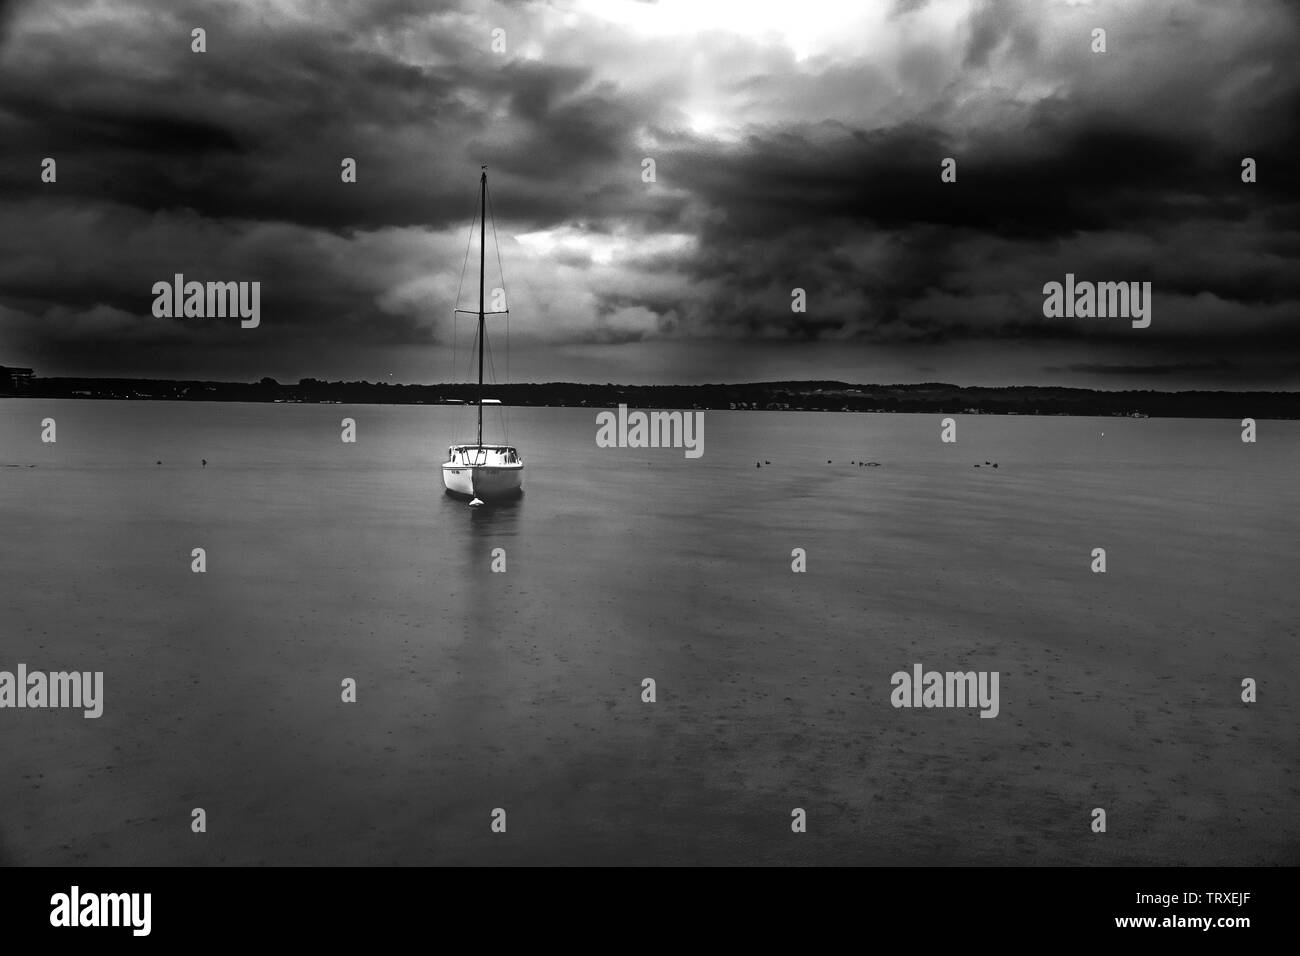 little sailboat floating under ominous stormy skies as it starts to rain. Stock Photo